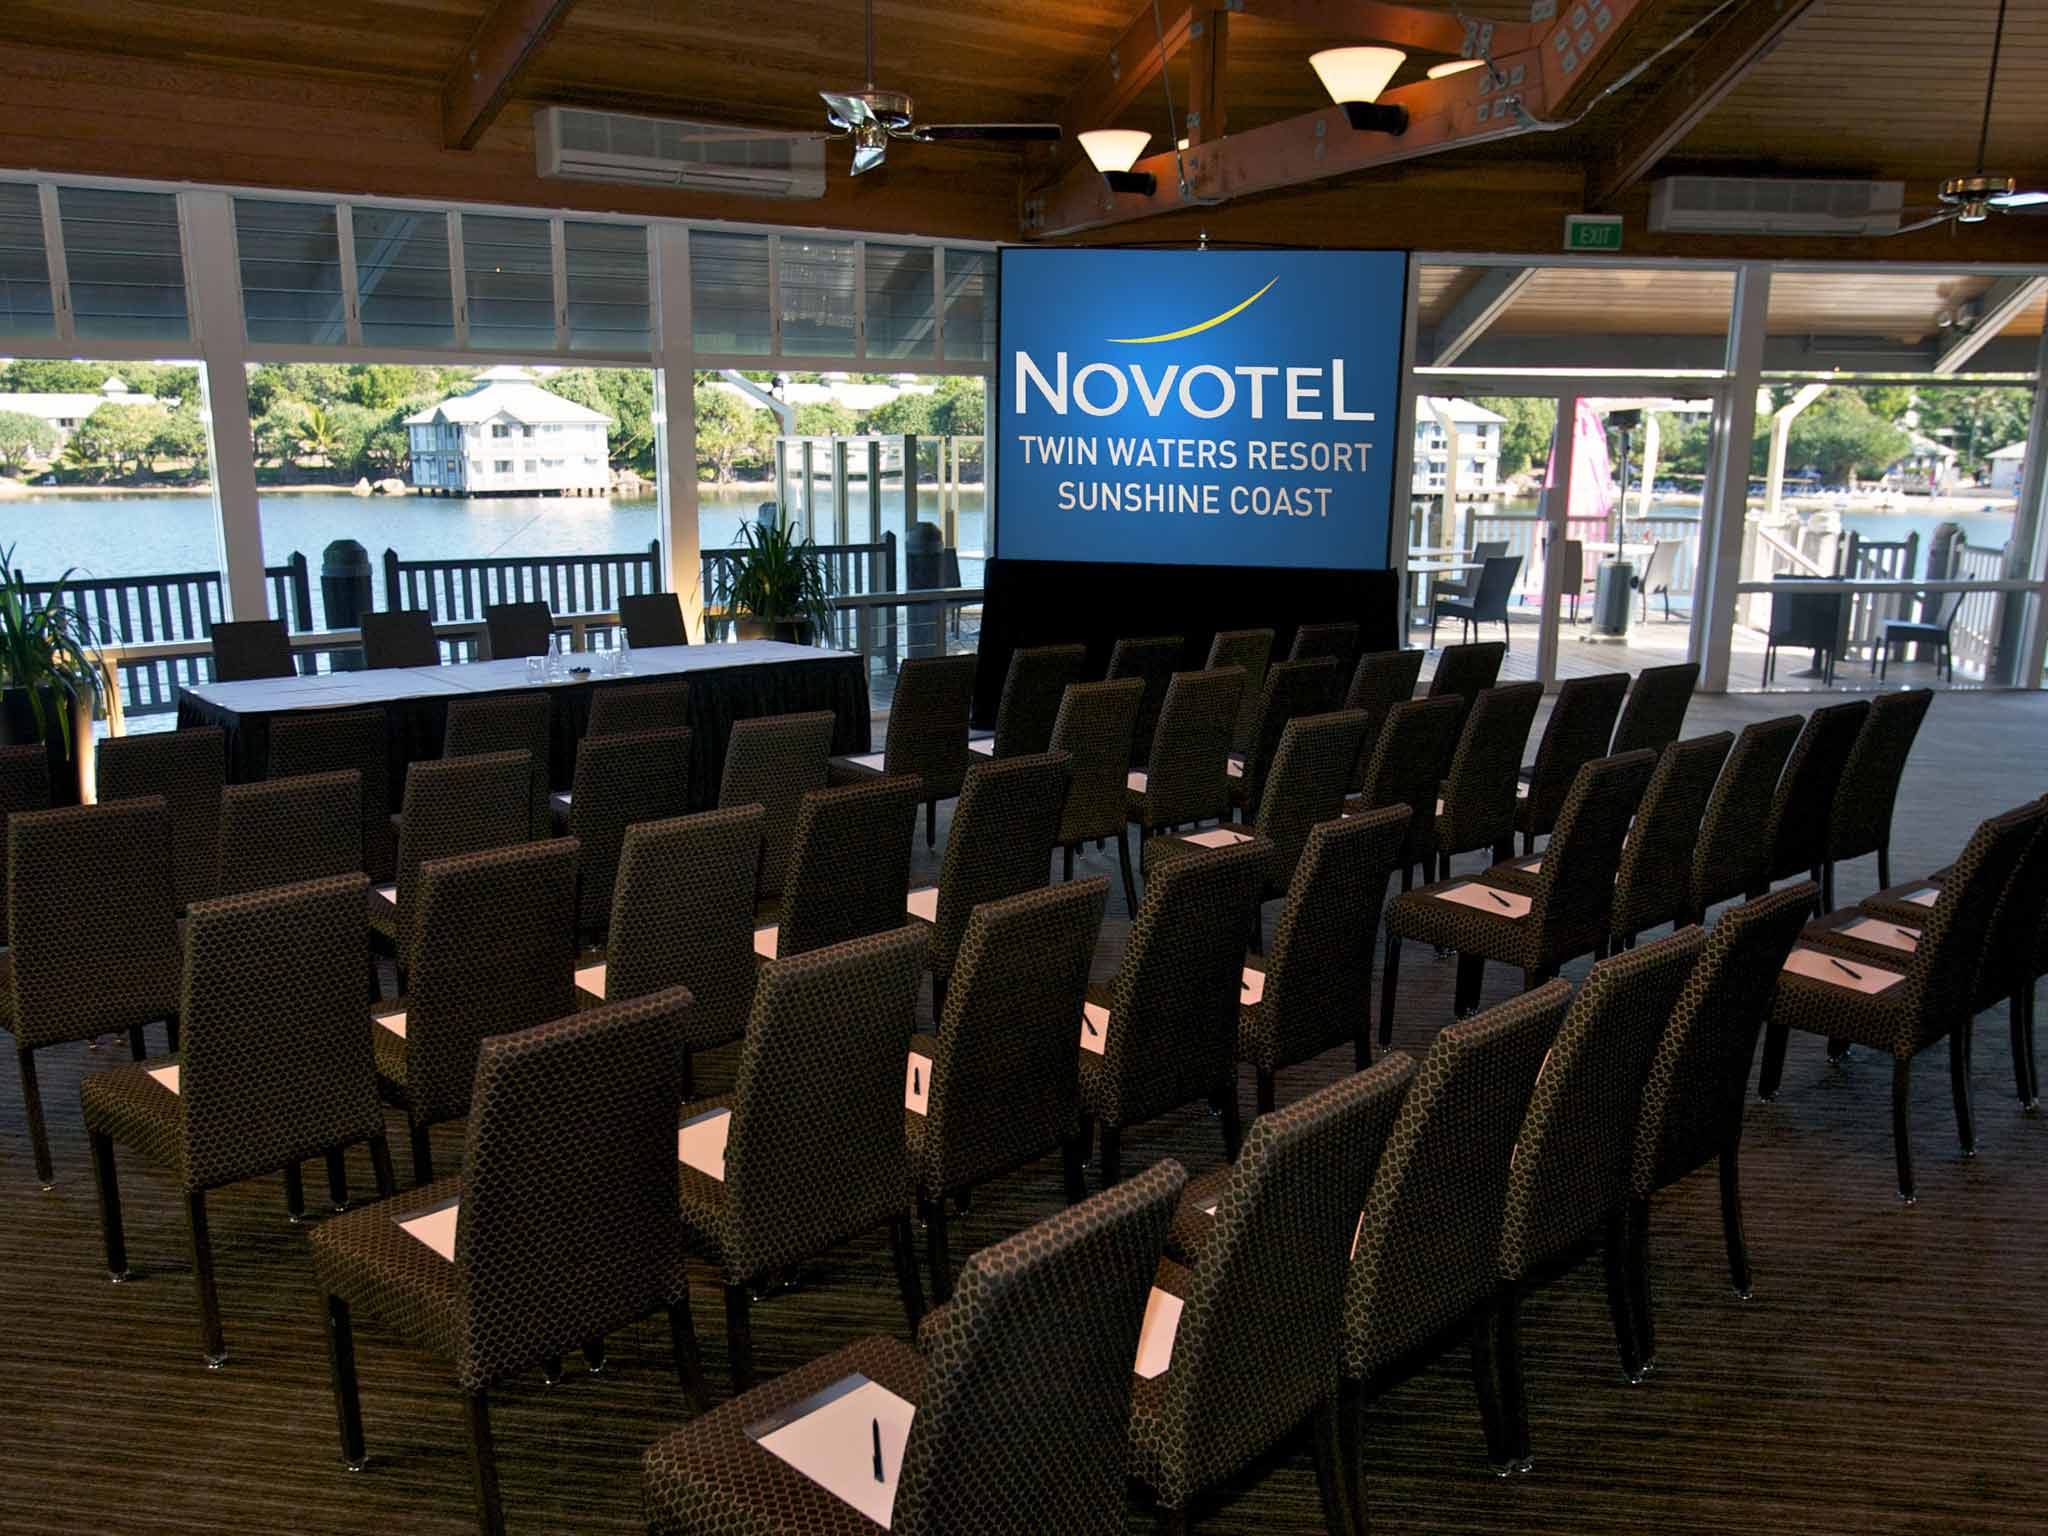 Novotel Twin Waters Resort Meeting room